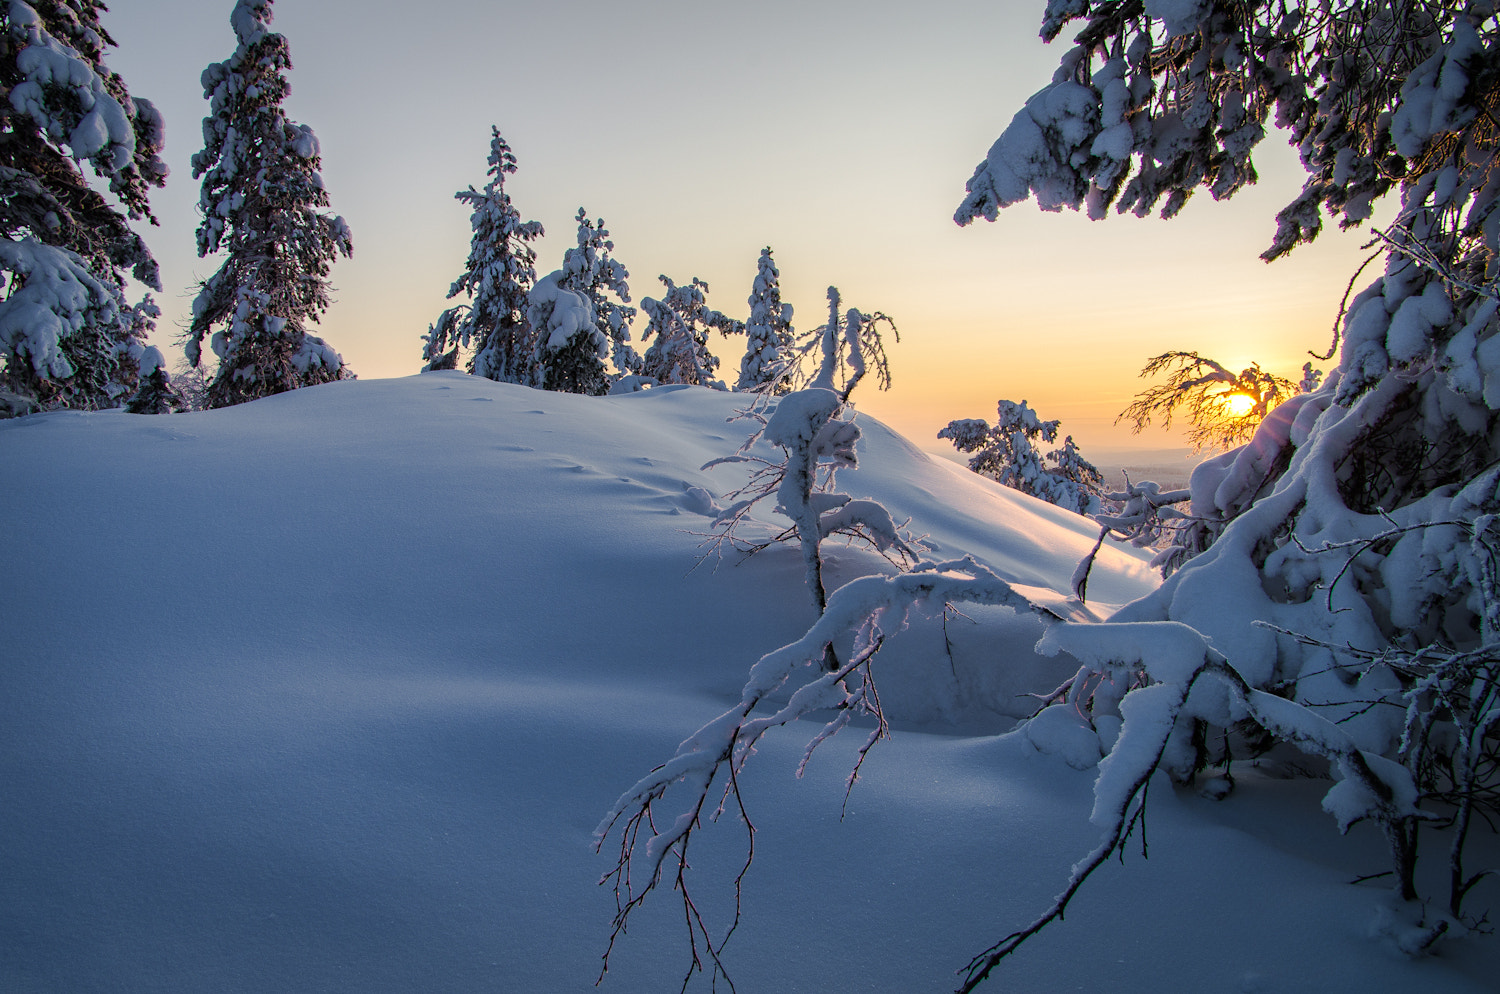 Photograph Pure White Snow by Marko Jortikka on 500px